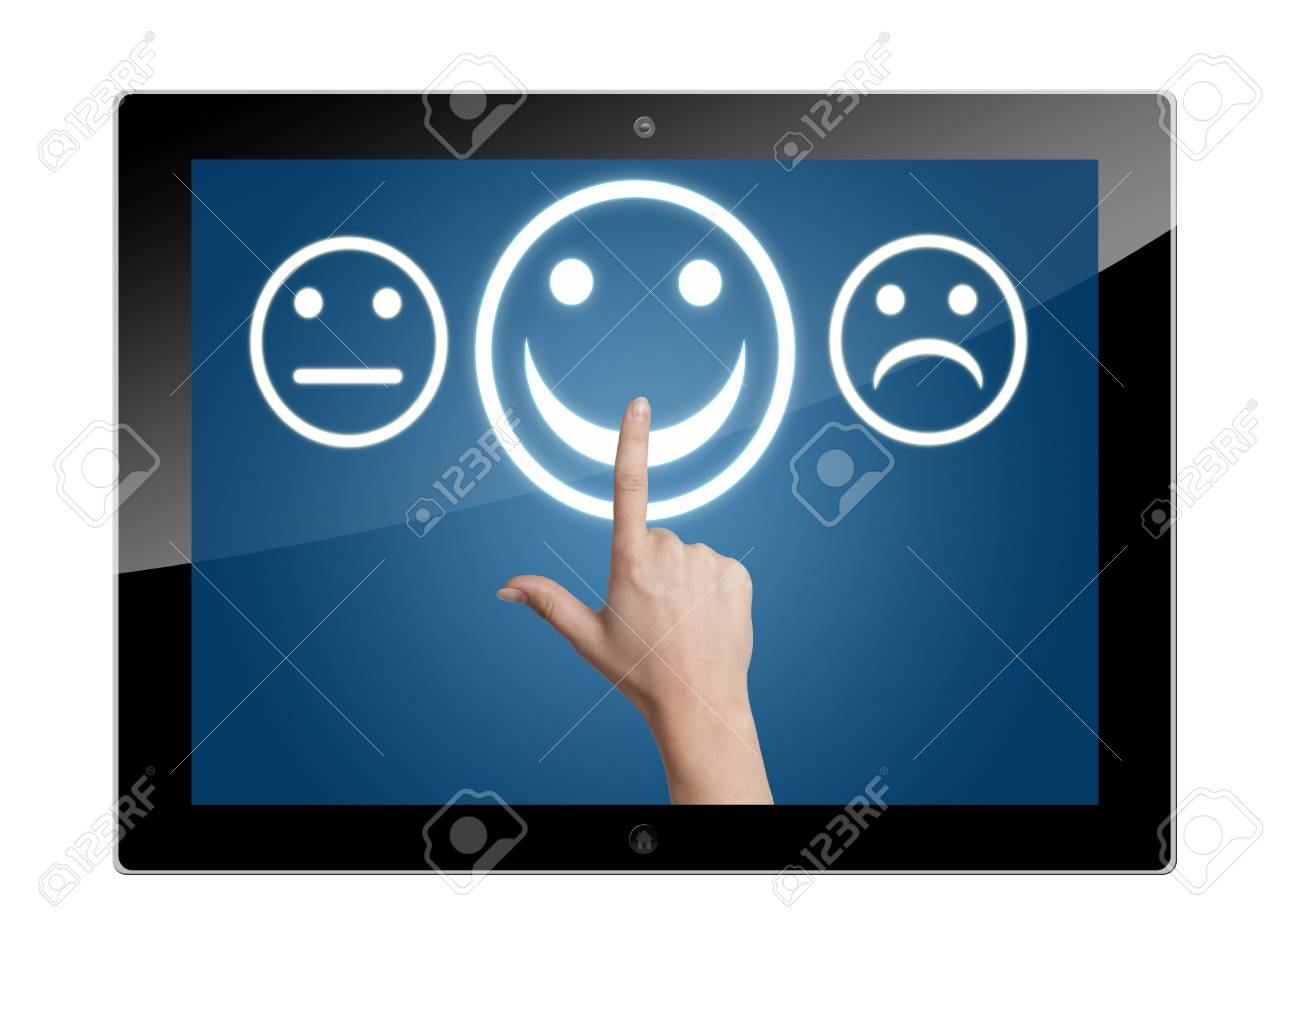 Tablet Computer with feedback rating buttons Stock Photo - 19611027